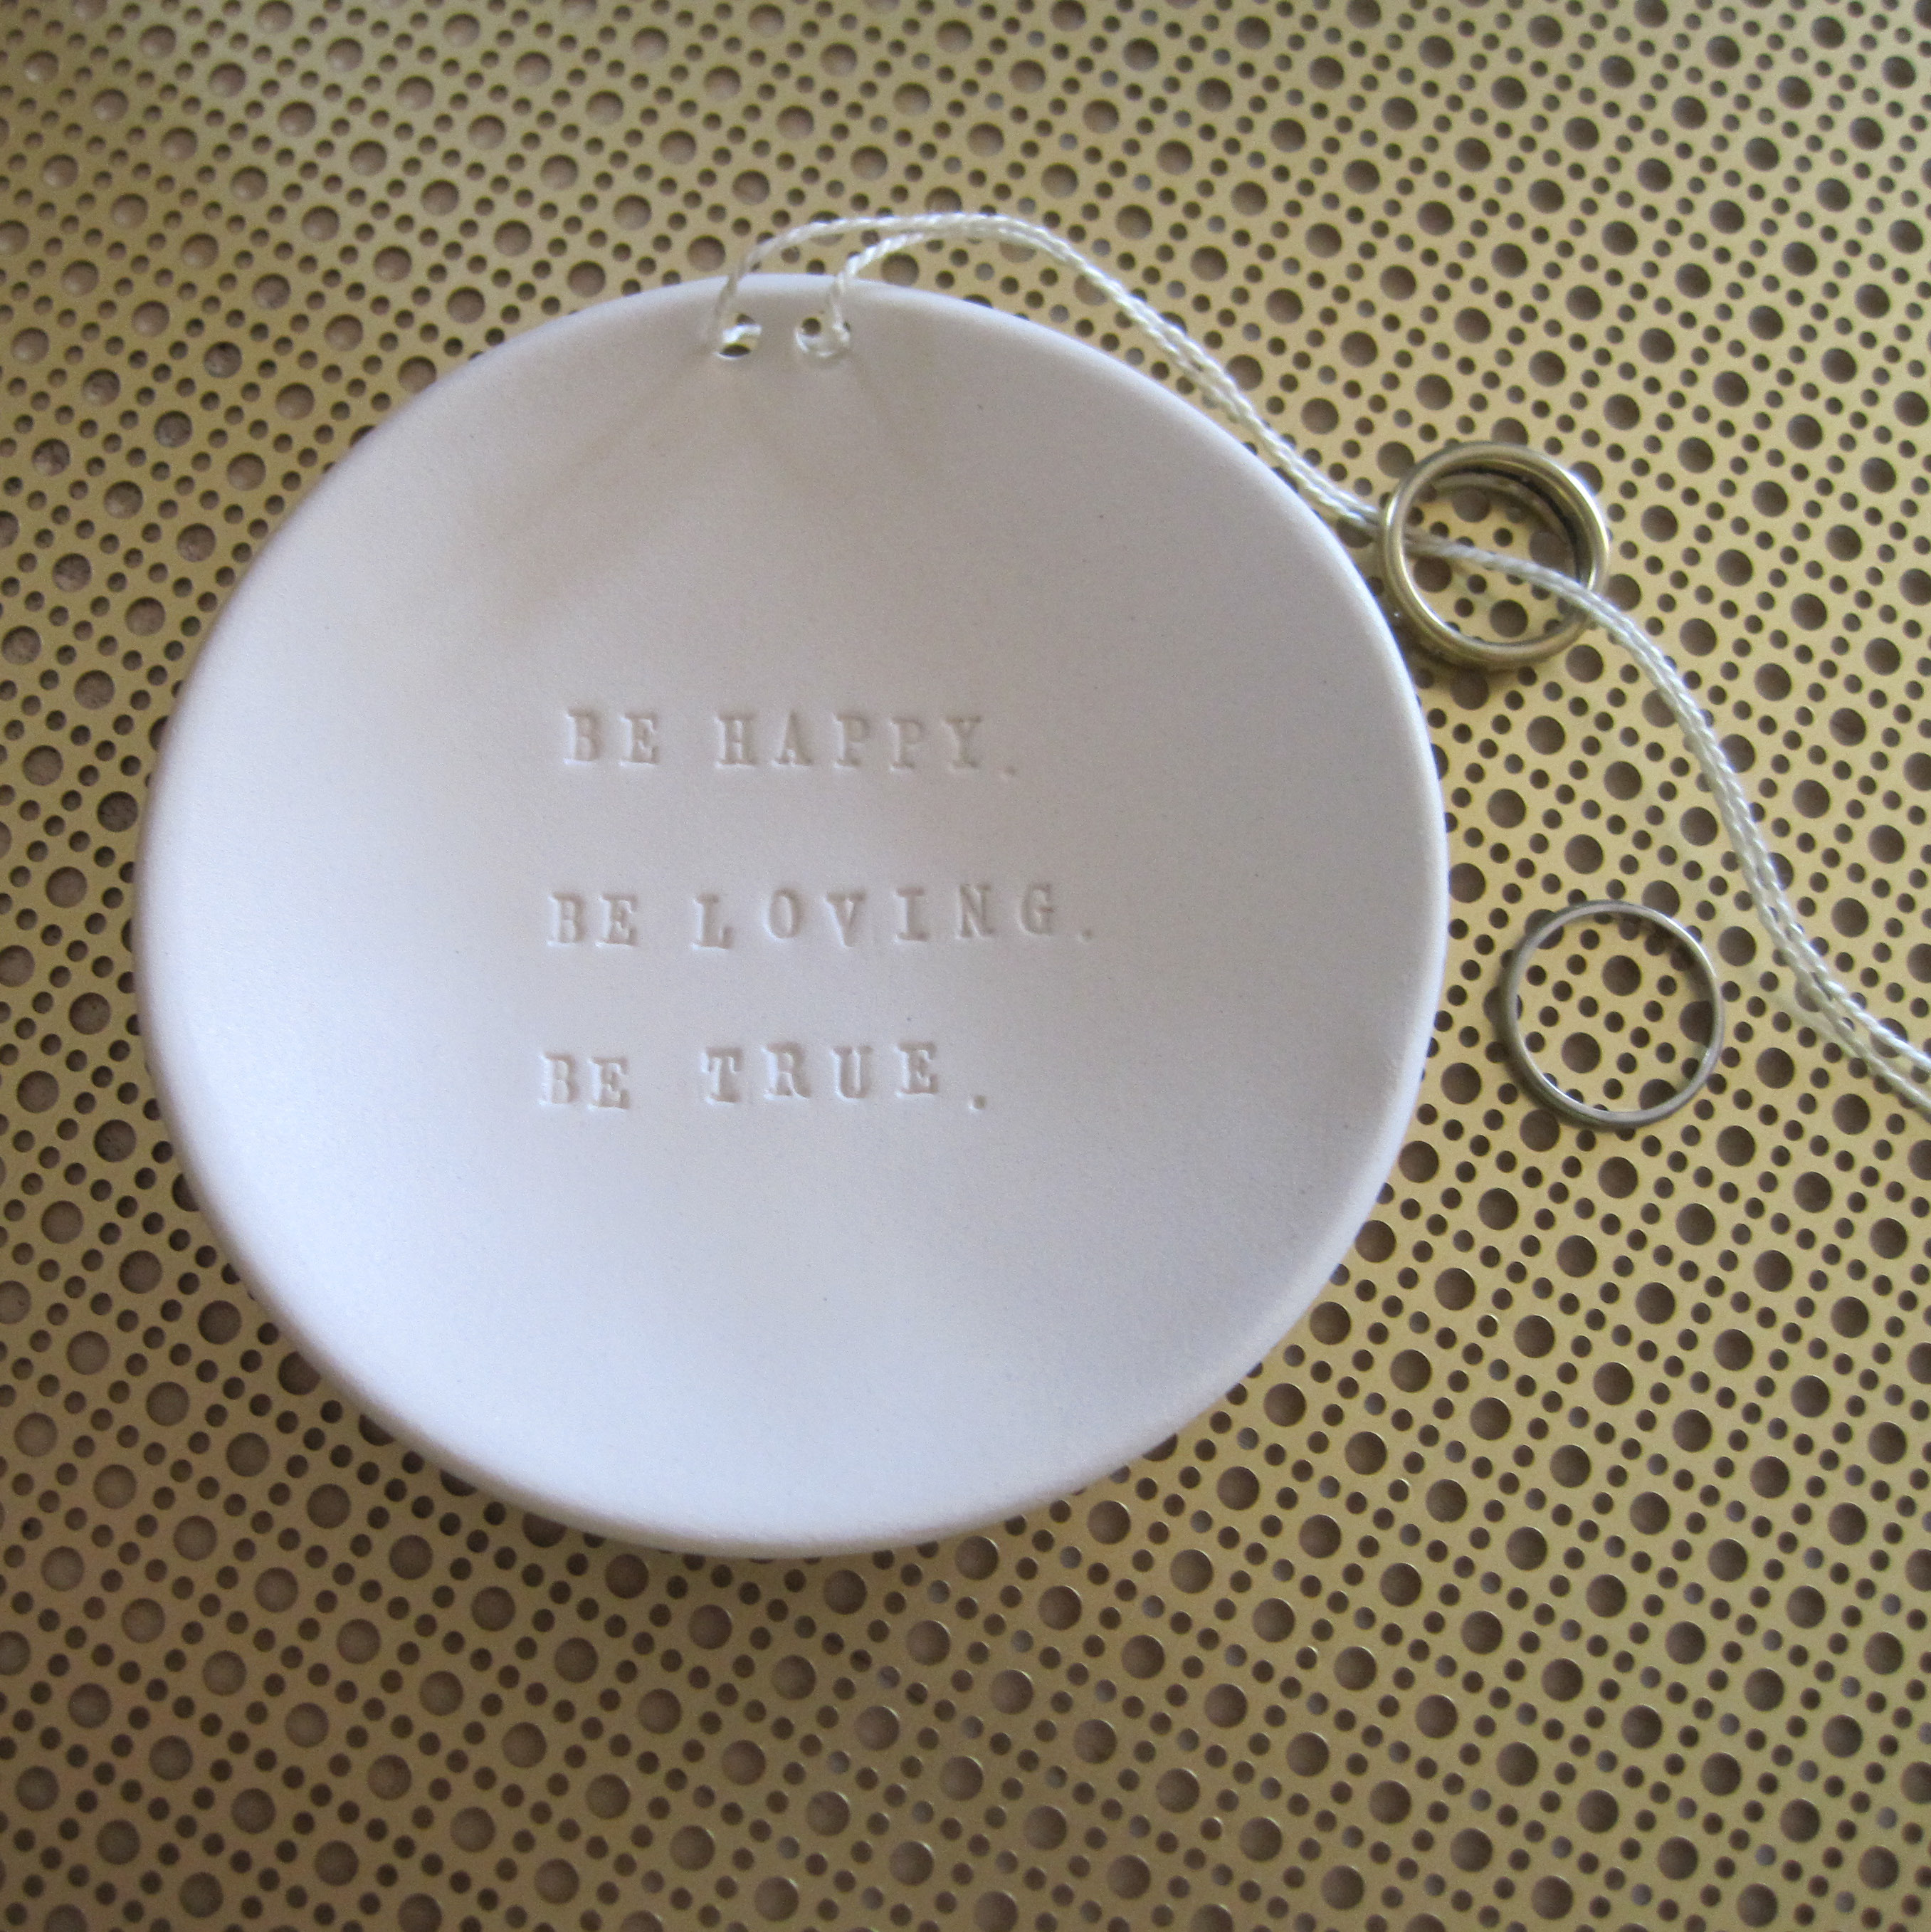 Ceremony, Inspiration, Reception, Flowers & Decor, Bridesmaids, Bridesmaids Dresses, Fashion, white, yellow, brown, silver, gold, Party, Ring, Bridal, Nest, Hand, Board, Pillow, Bearer, Made, Personalized, Bowl, Holder, Etsy, Palomas, Palomasnest, Stamped, Dish, Handmade, Engraved, Palomas nest, Cere